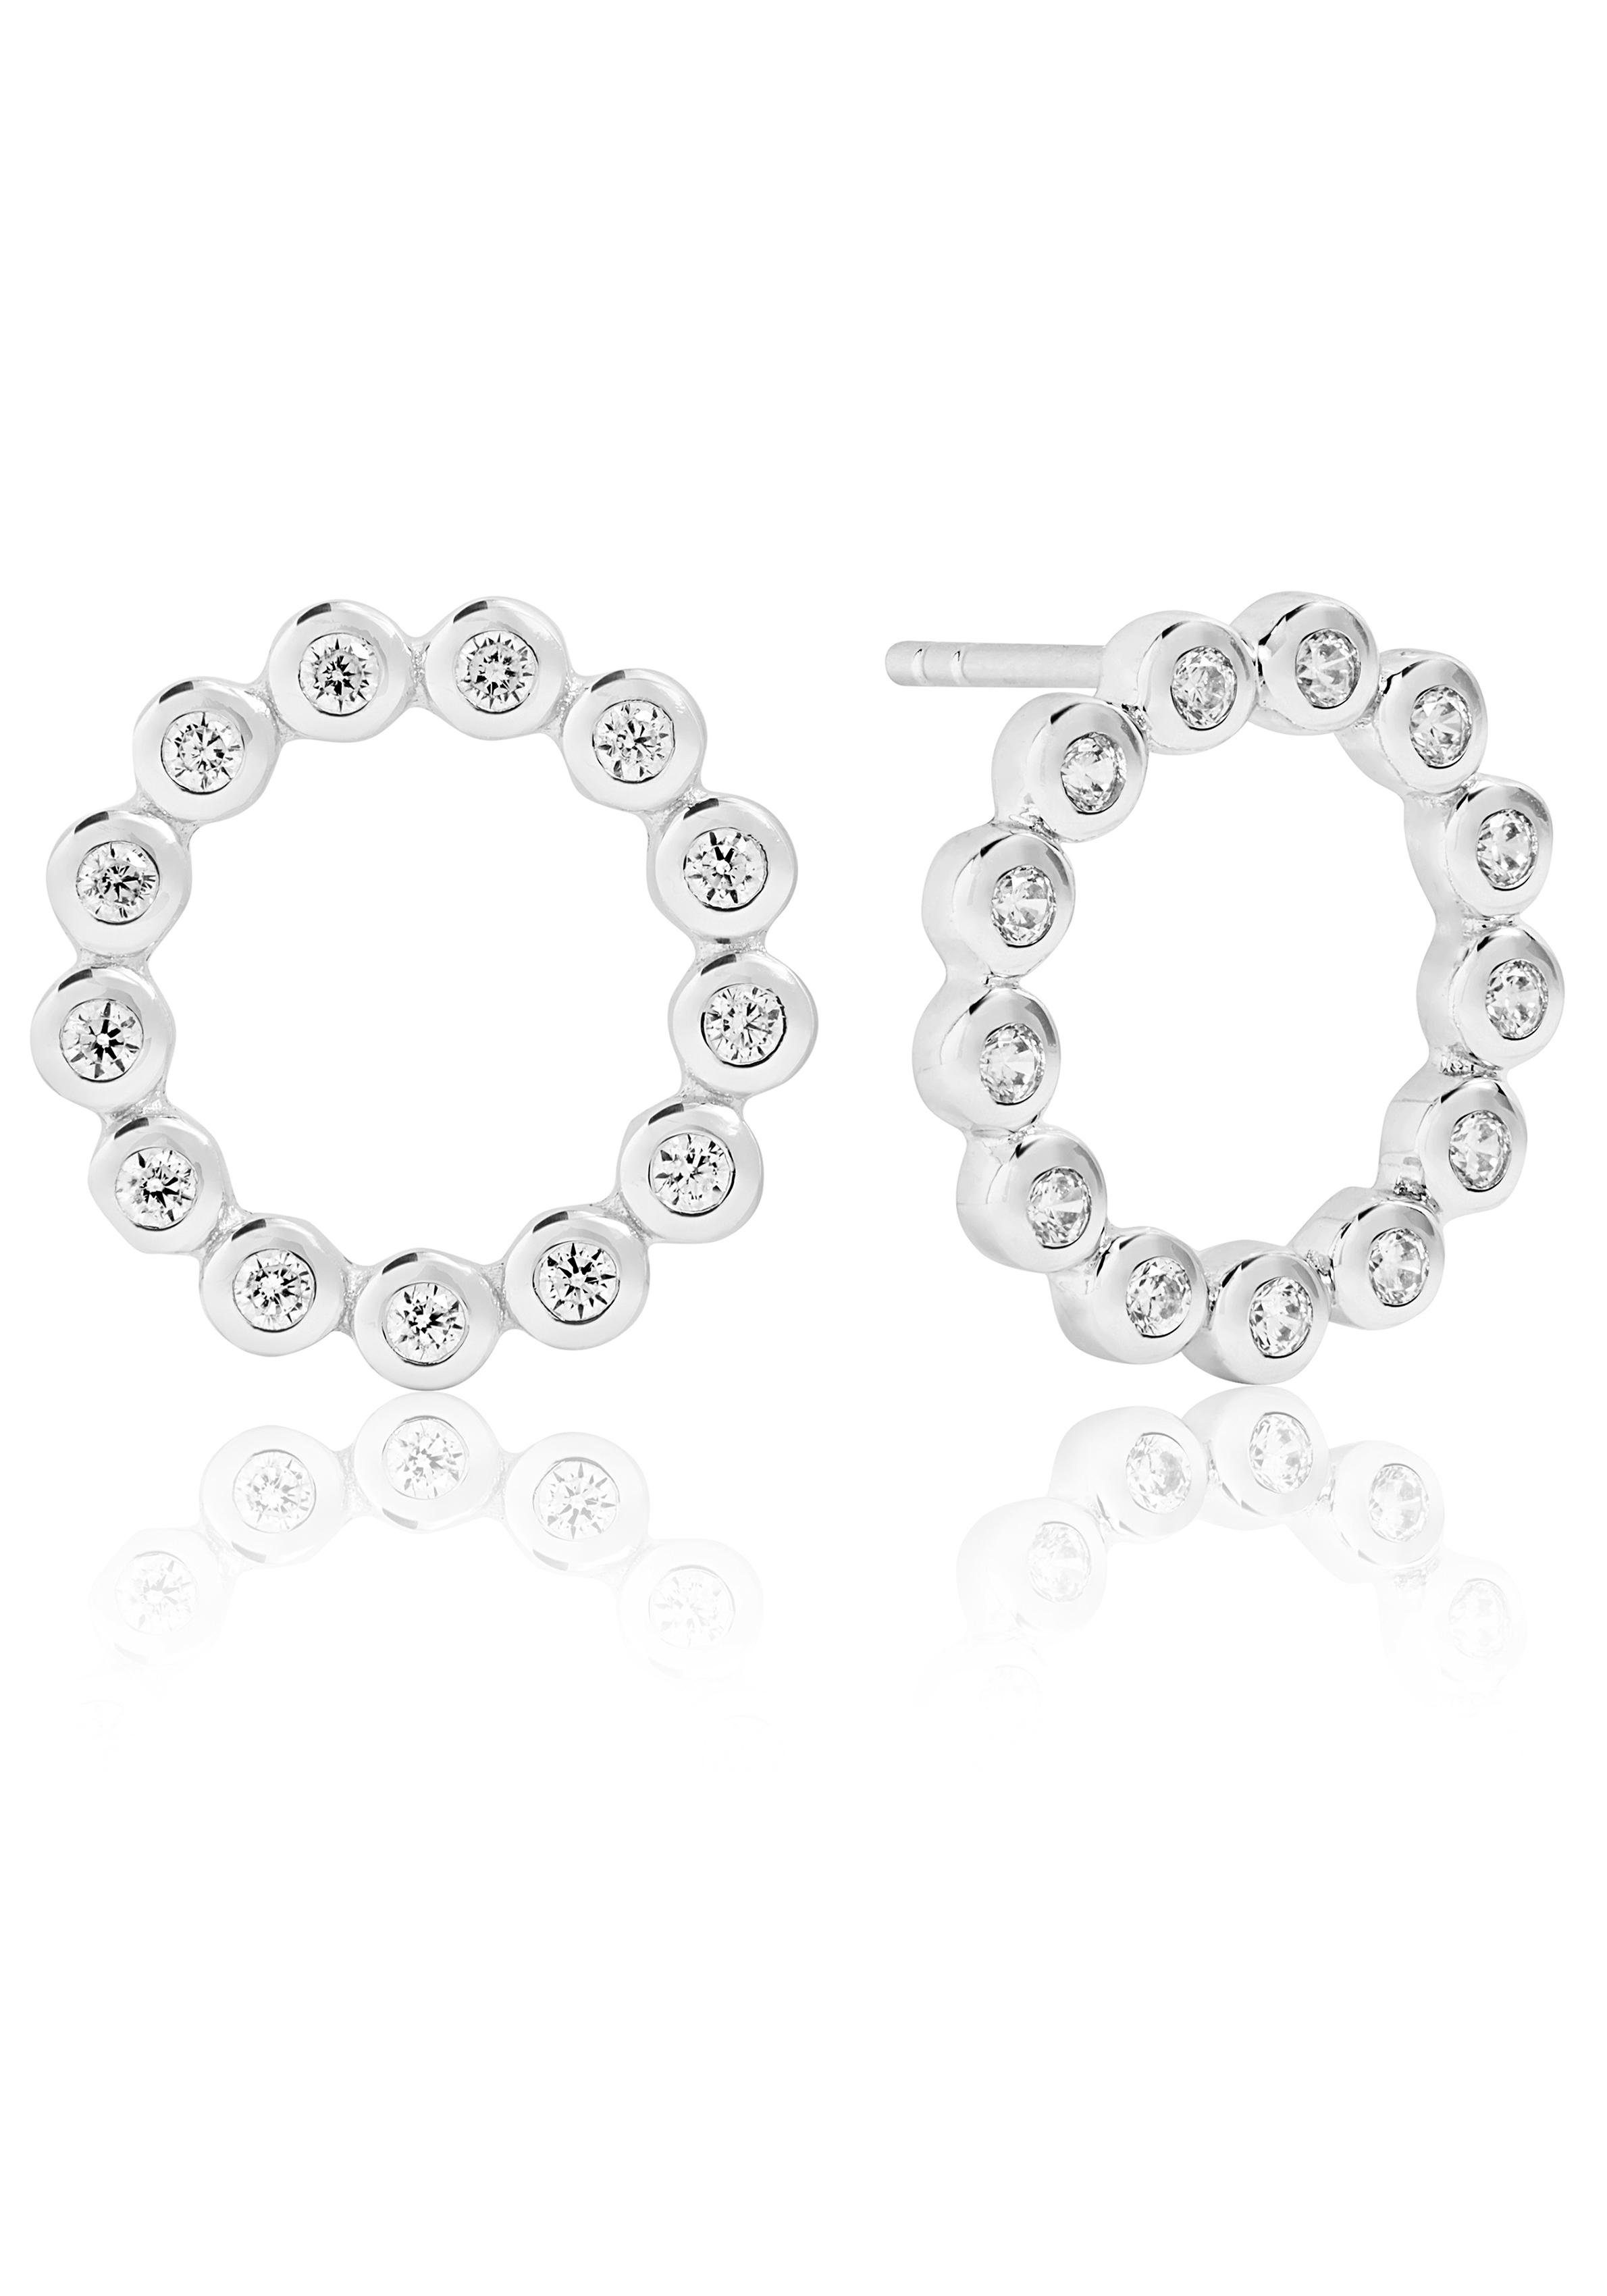 Sif Jakobs Jewellery Paar Ohrstecker »Sardinien circolo piccolo earrings, SJ-E2688-CZ« mit Zirkonia